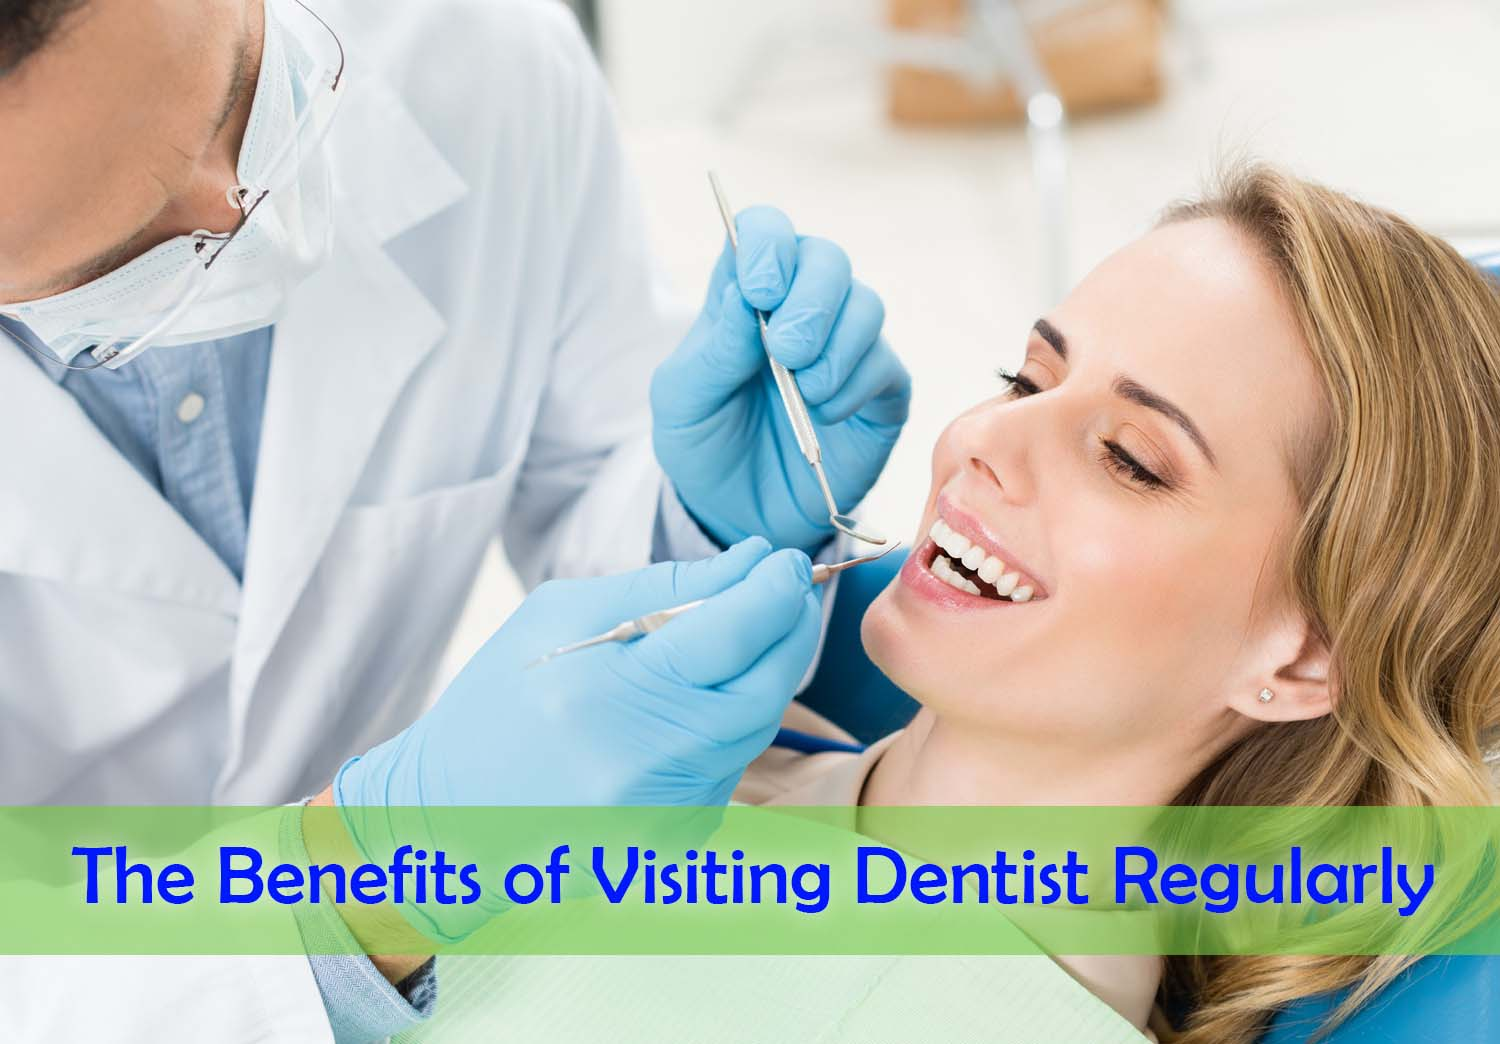 The Benefits of Visiting Dentist Regularly